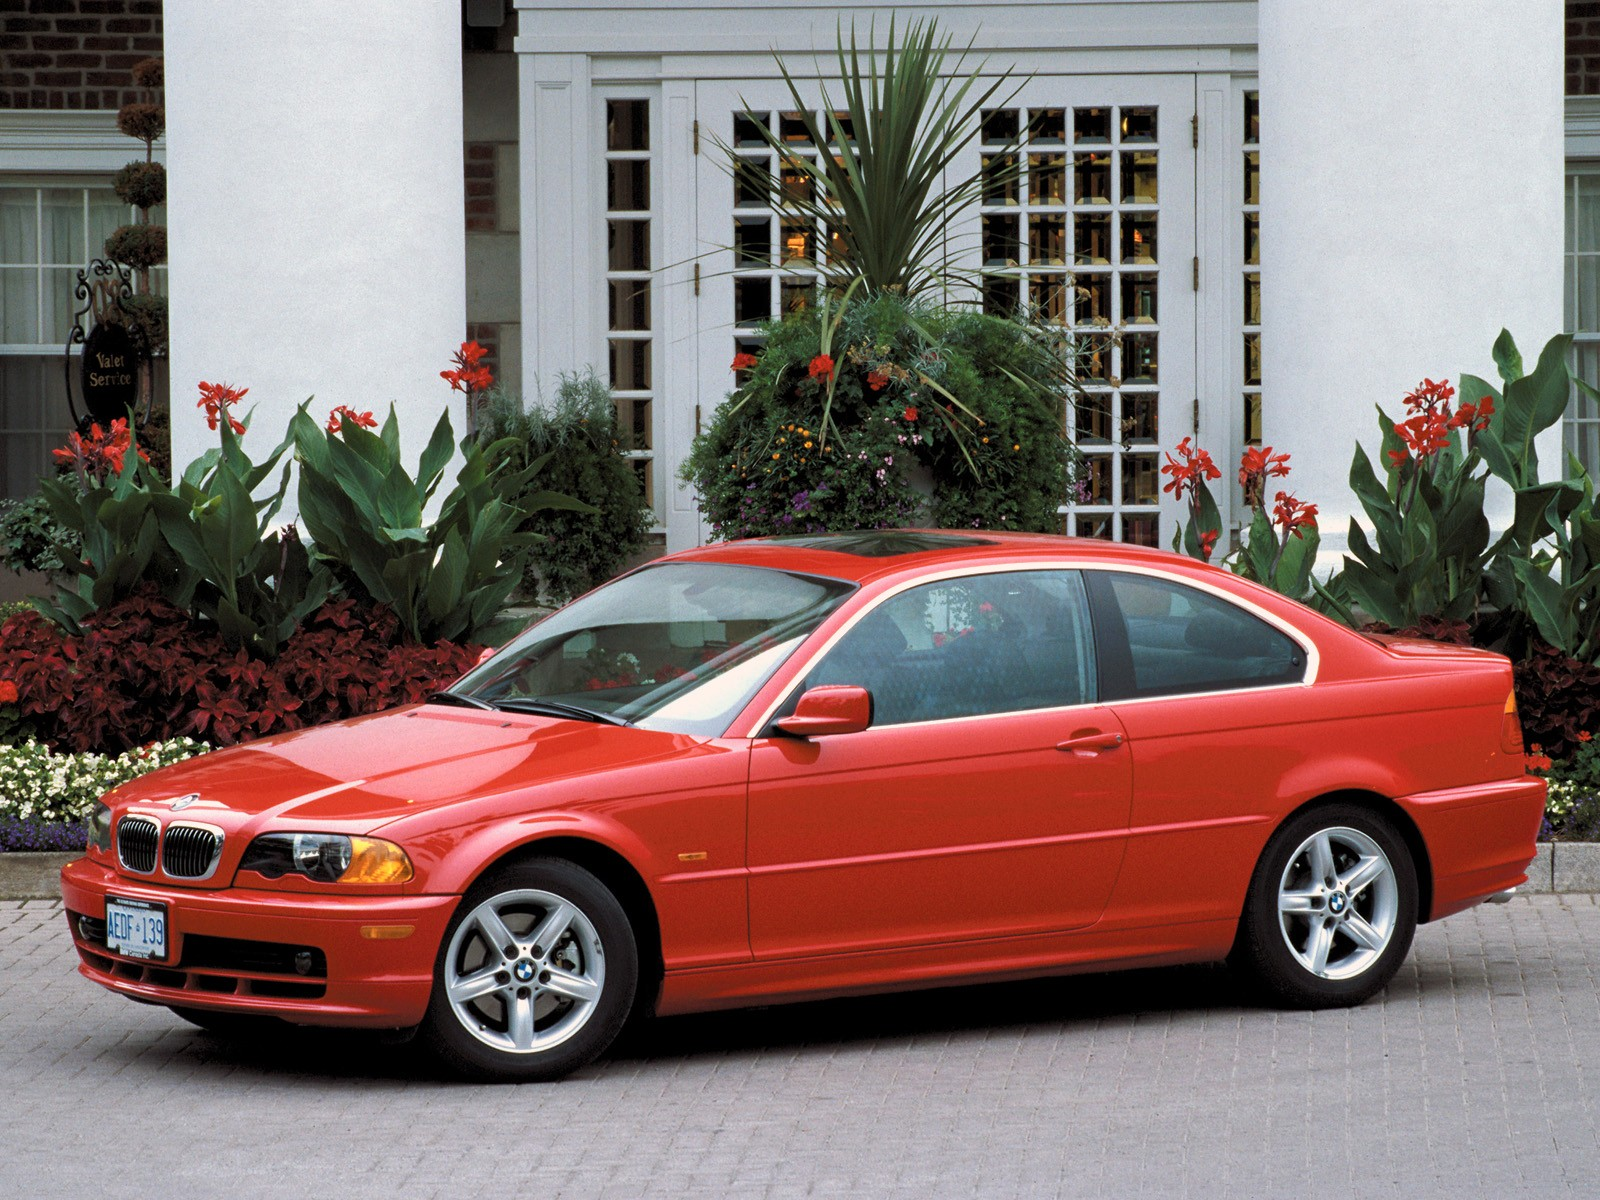 BMW 3 Series Coupe (E46) - 1999, 2000, 2001, 2002, 2003 ...